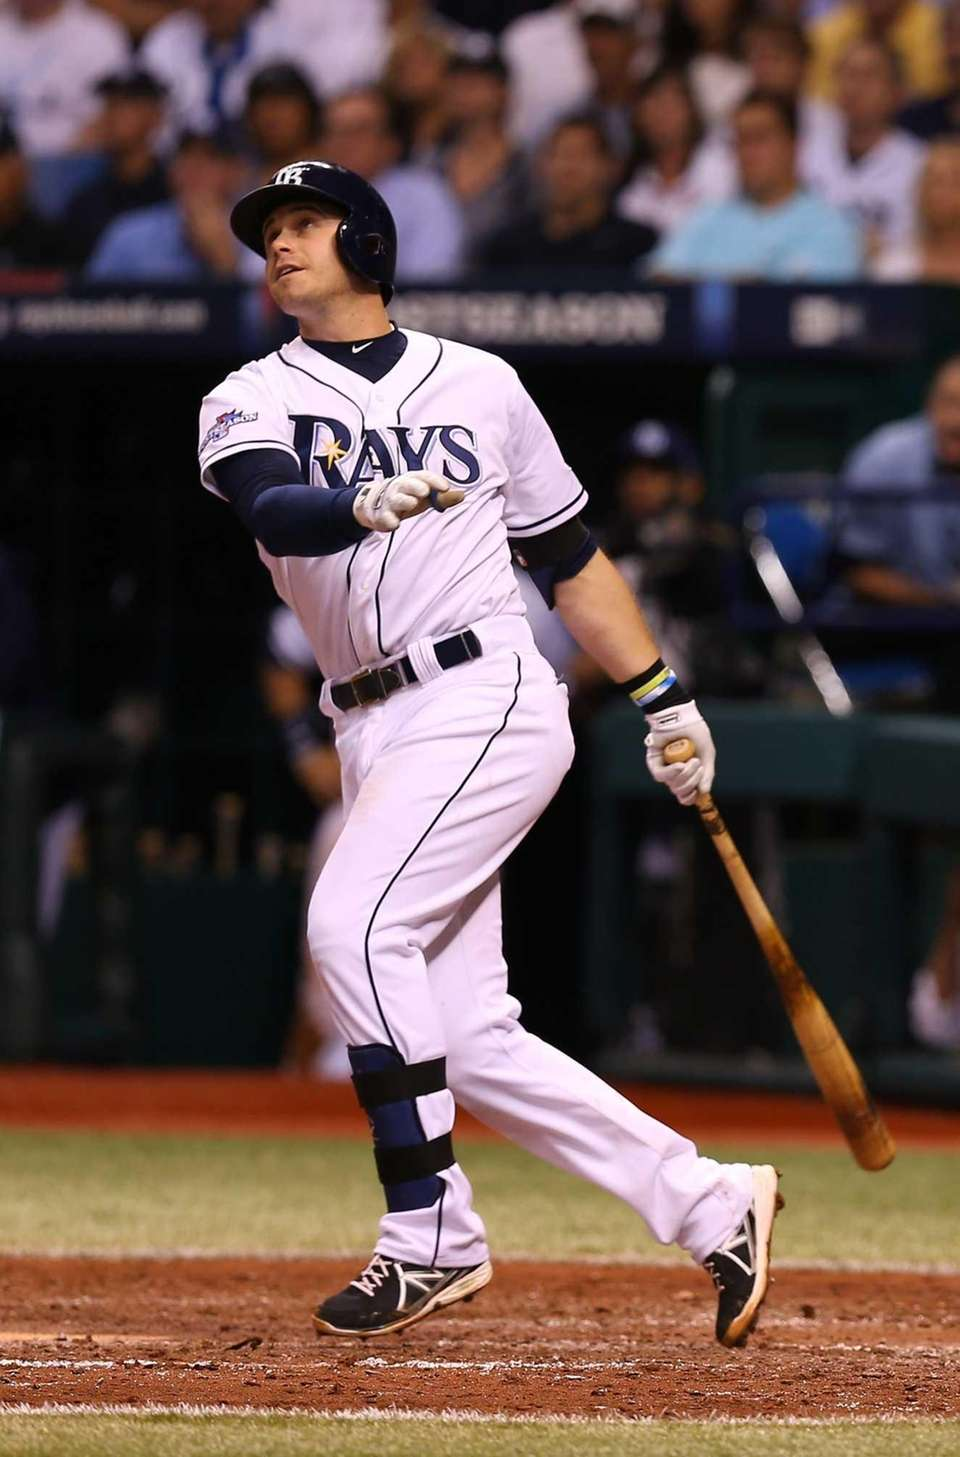 Evan Longoria of the Tampa Bay Rays hits